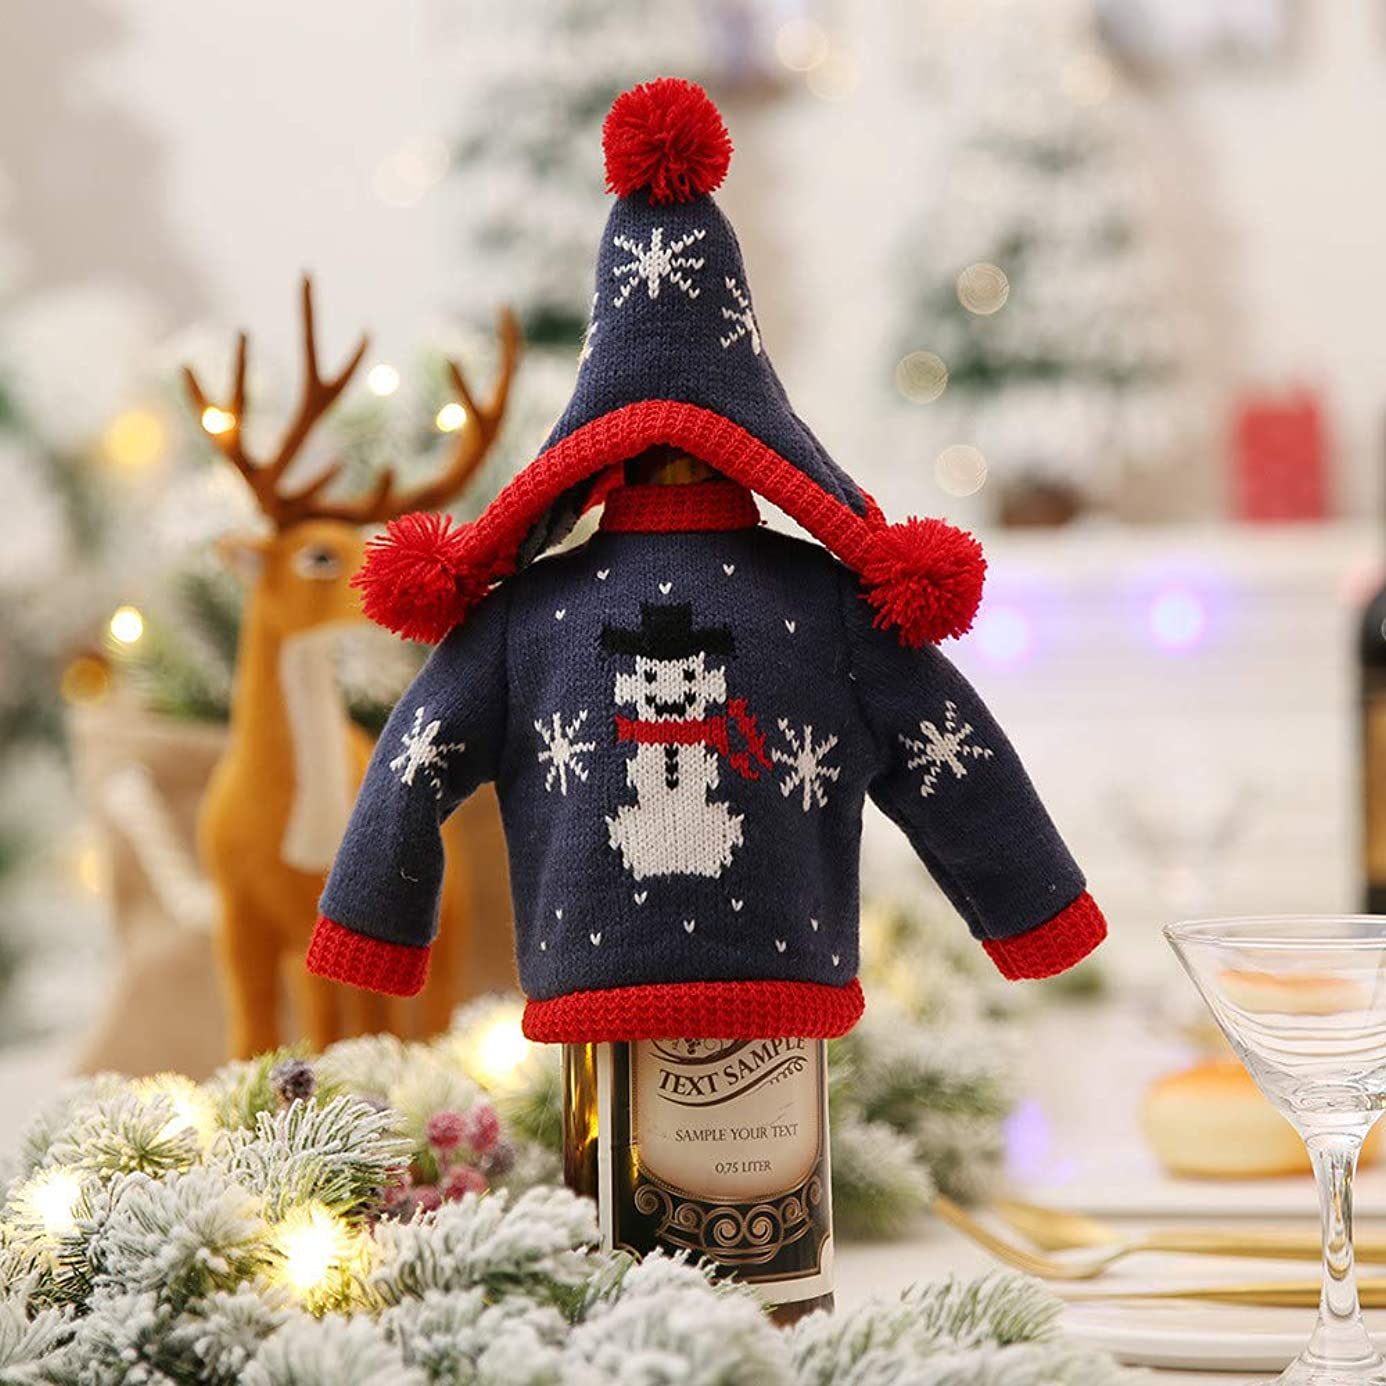 Iusun Christmas Knitted Wine Bottle Cover, Xmas Bottle Cap Decor Party Table Home Decoration xos8951876